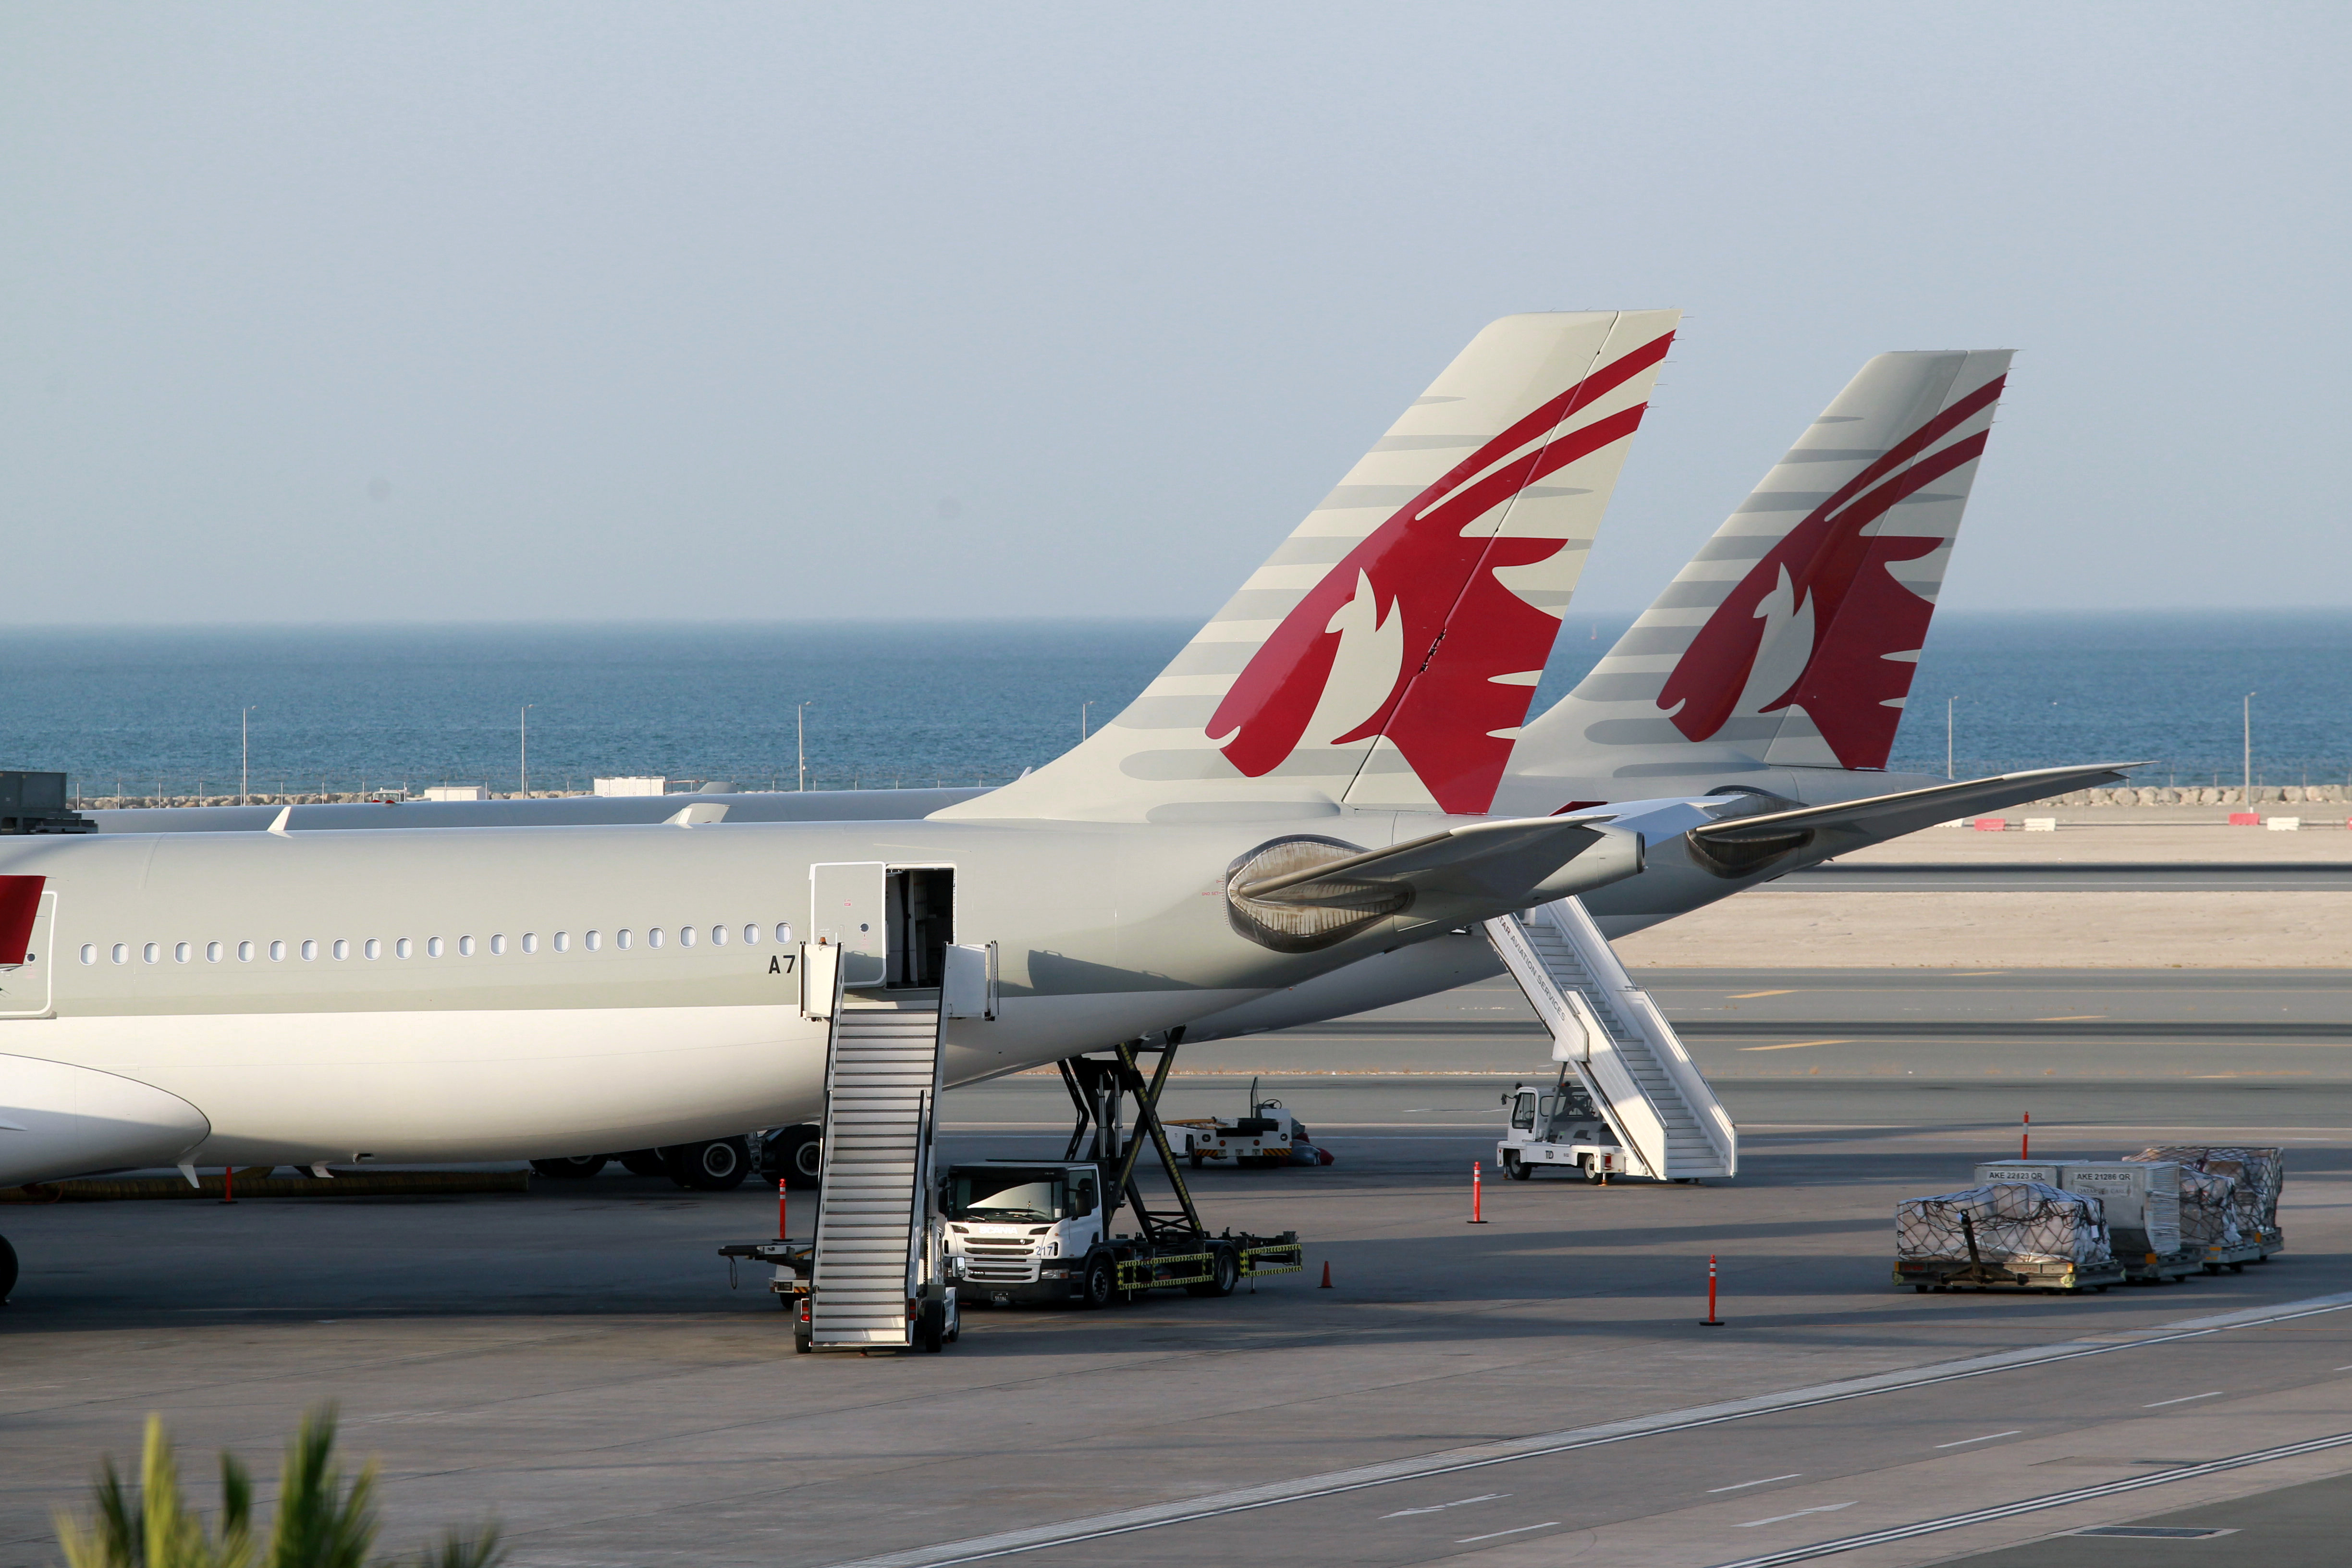 The Gulf's airlines are winning on product but losing at